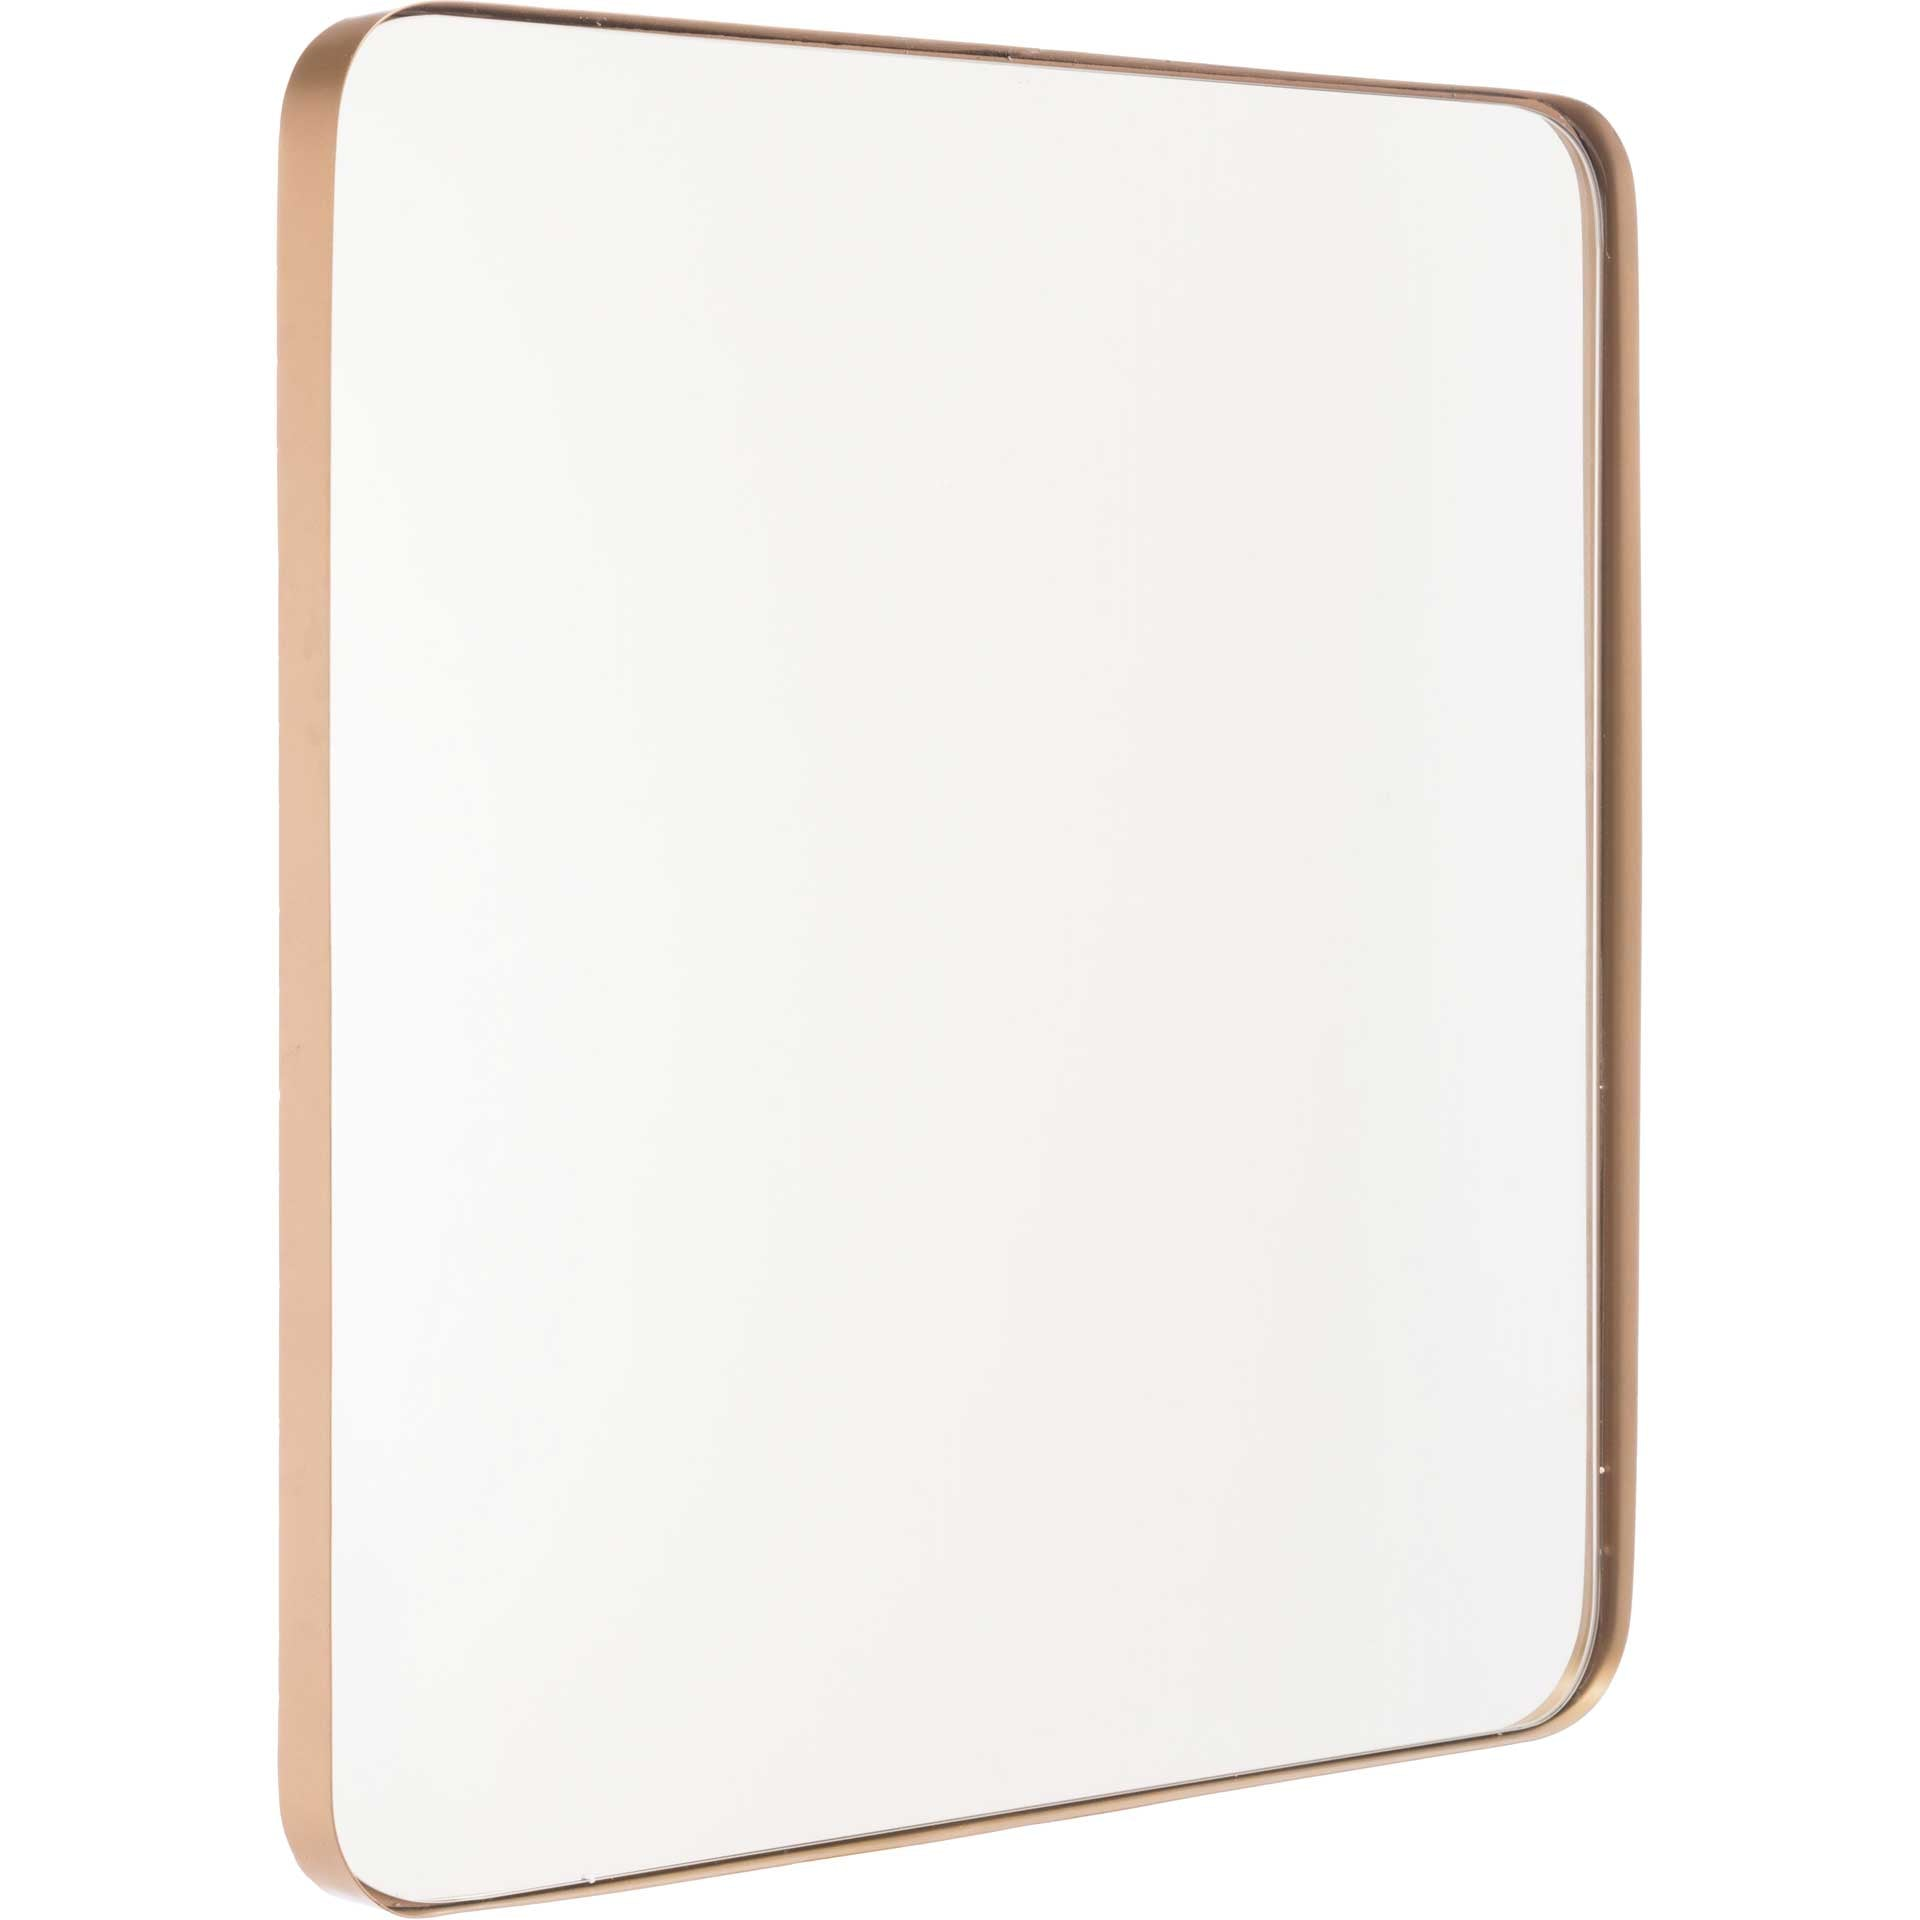 Square Inset Metal Mirror Gold